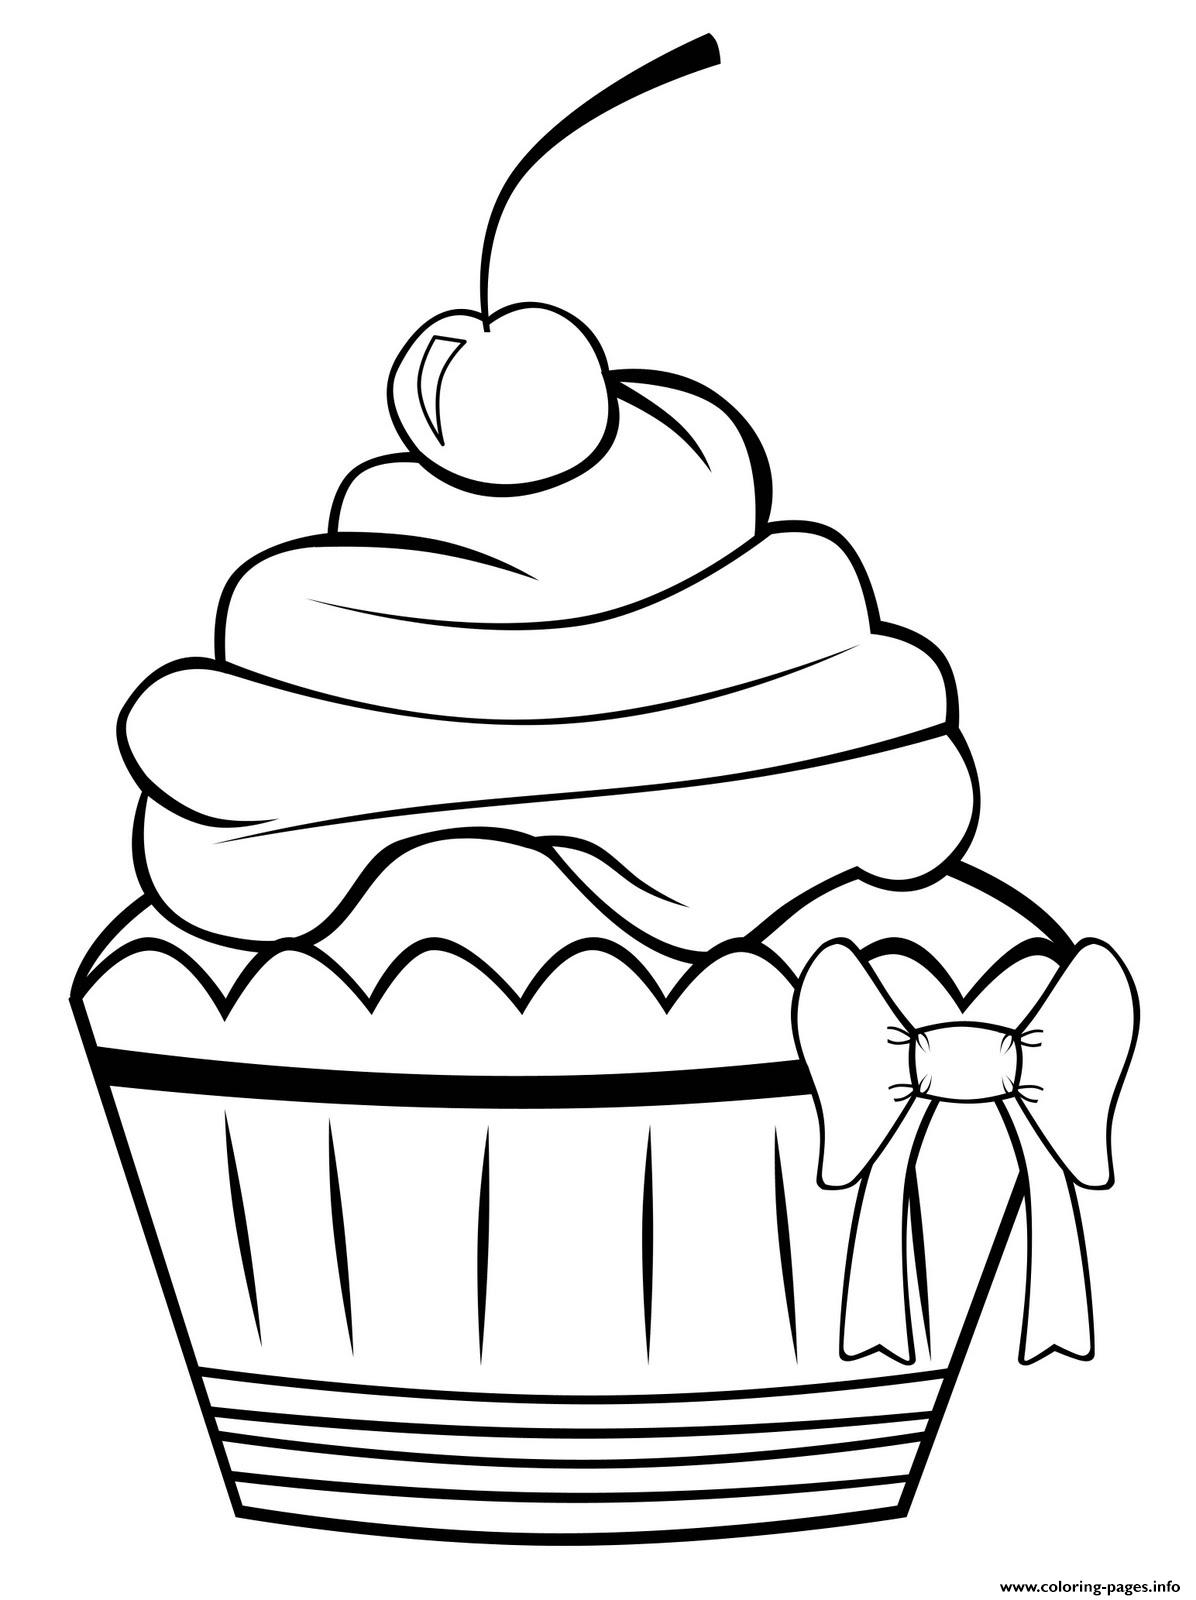 Cute Cupcake 3e3f coloring pages